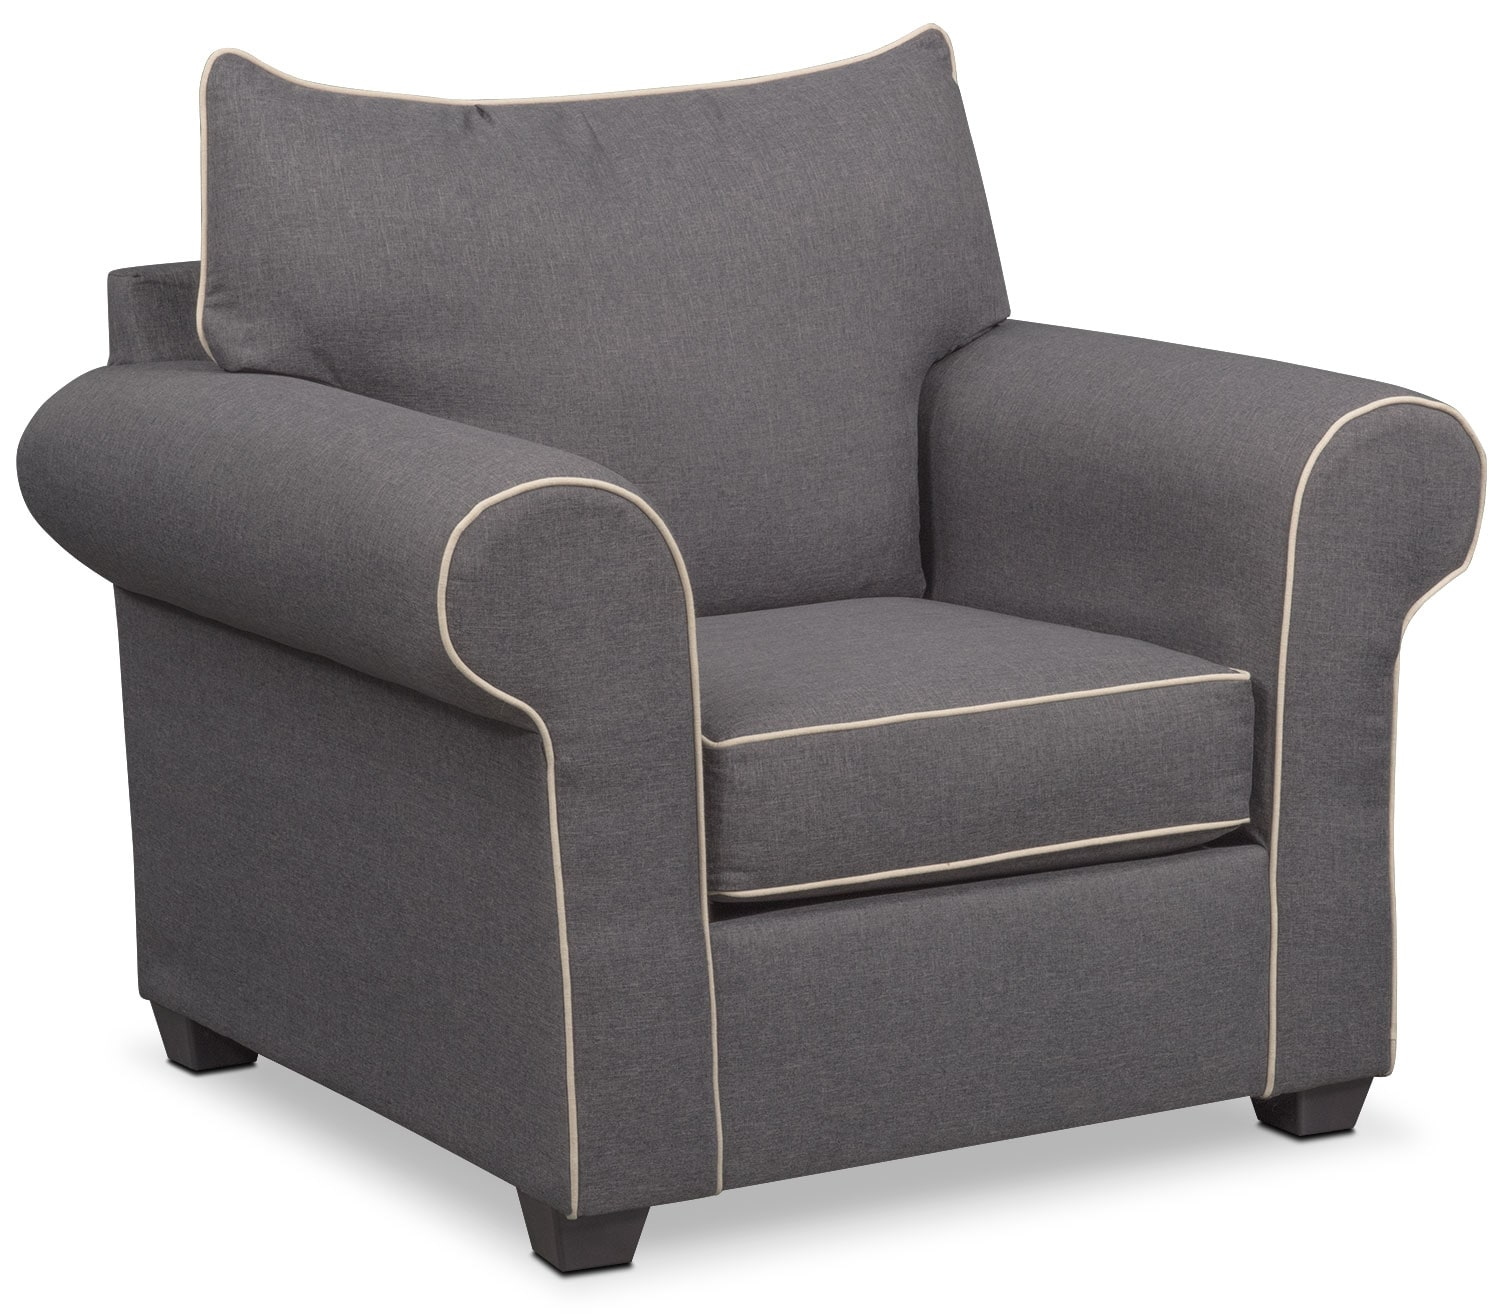 Carla Chair - Gray